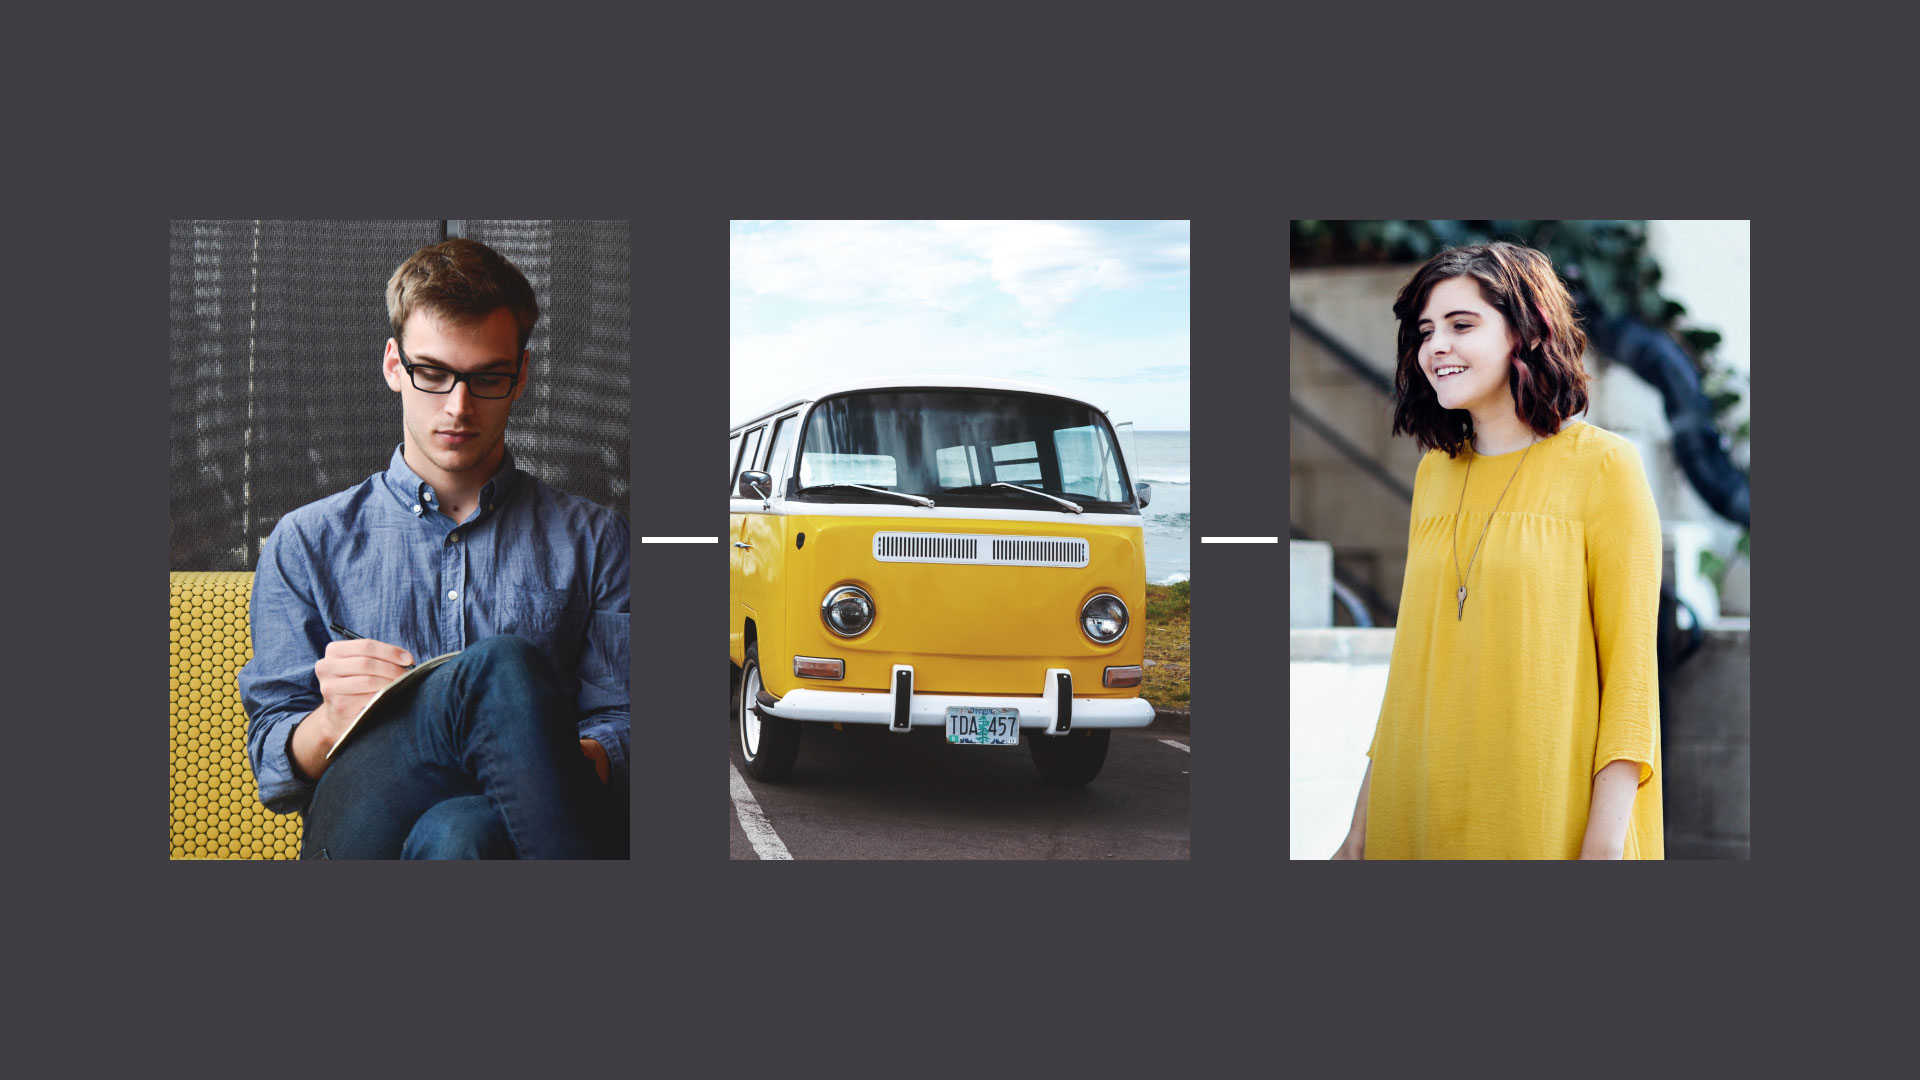 photos with yellow color scheme